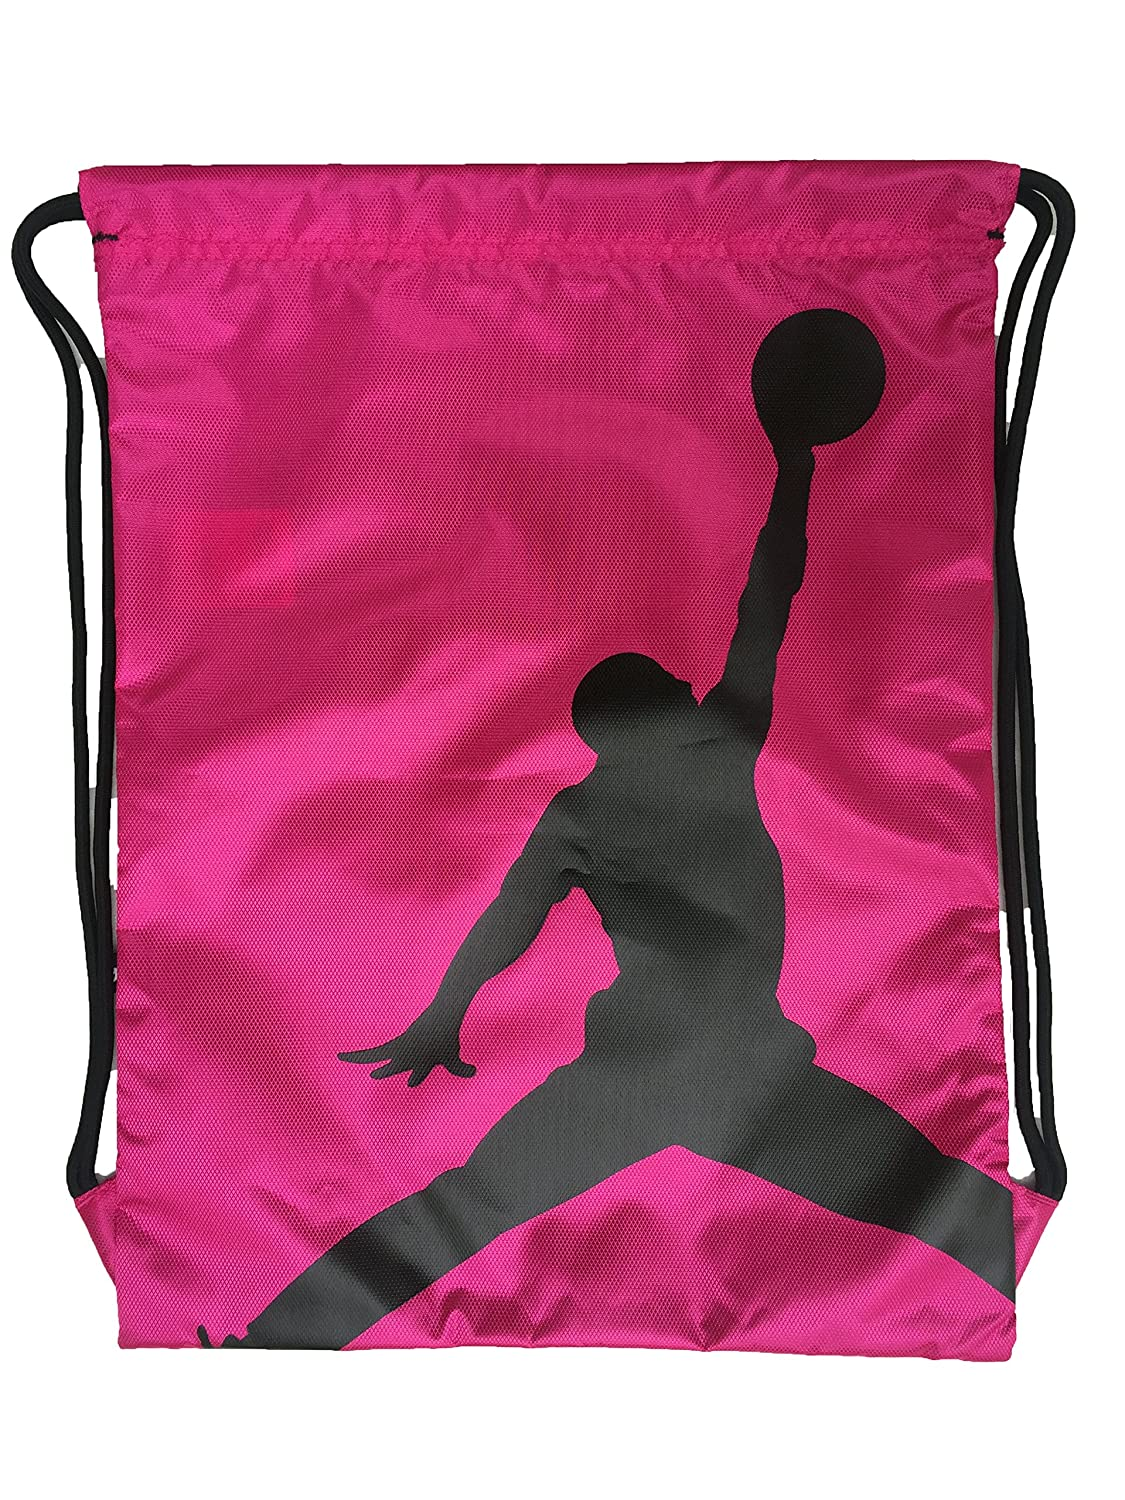 Amazon.com: Nike Air Jordan Jumpman ISO - Bolsa de deporte ...